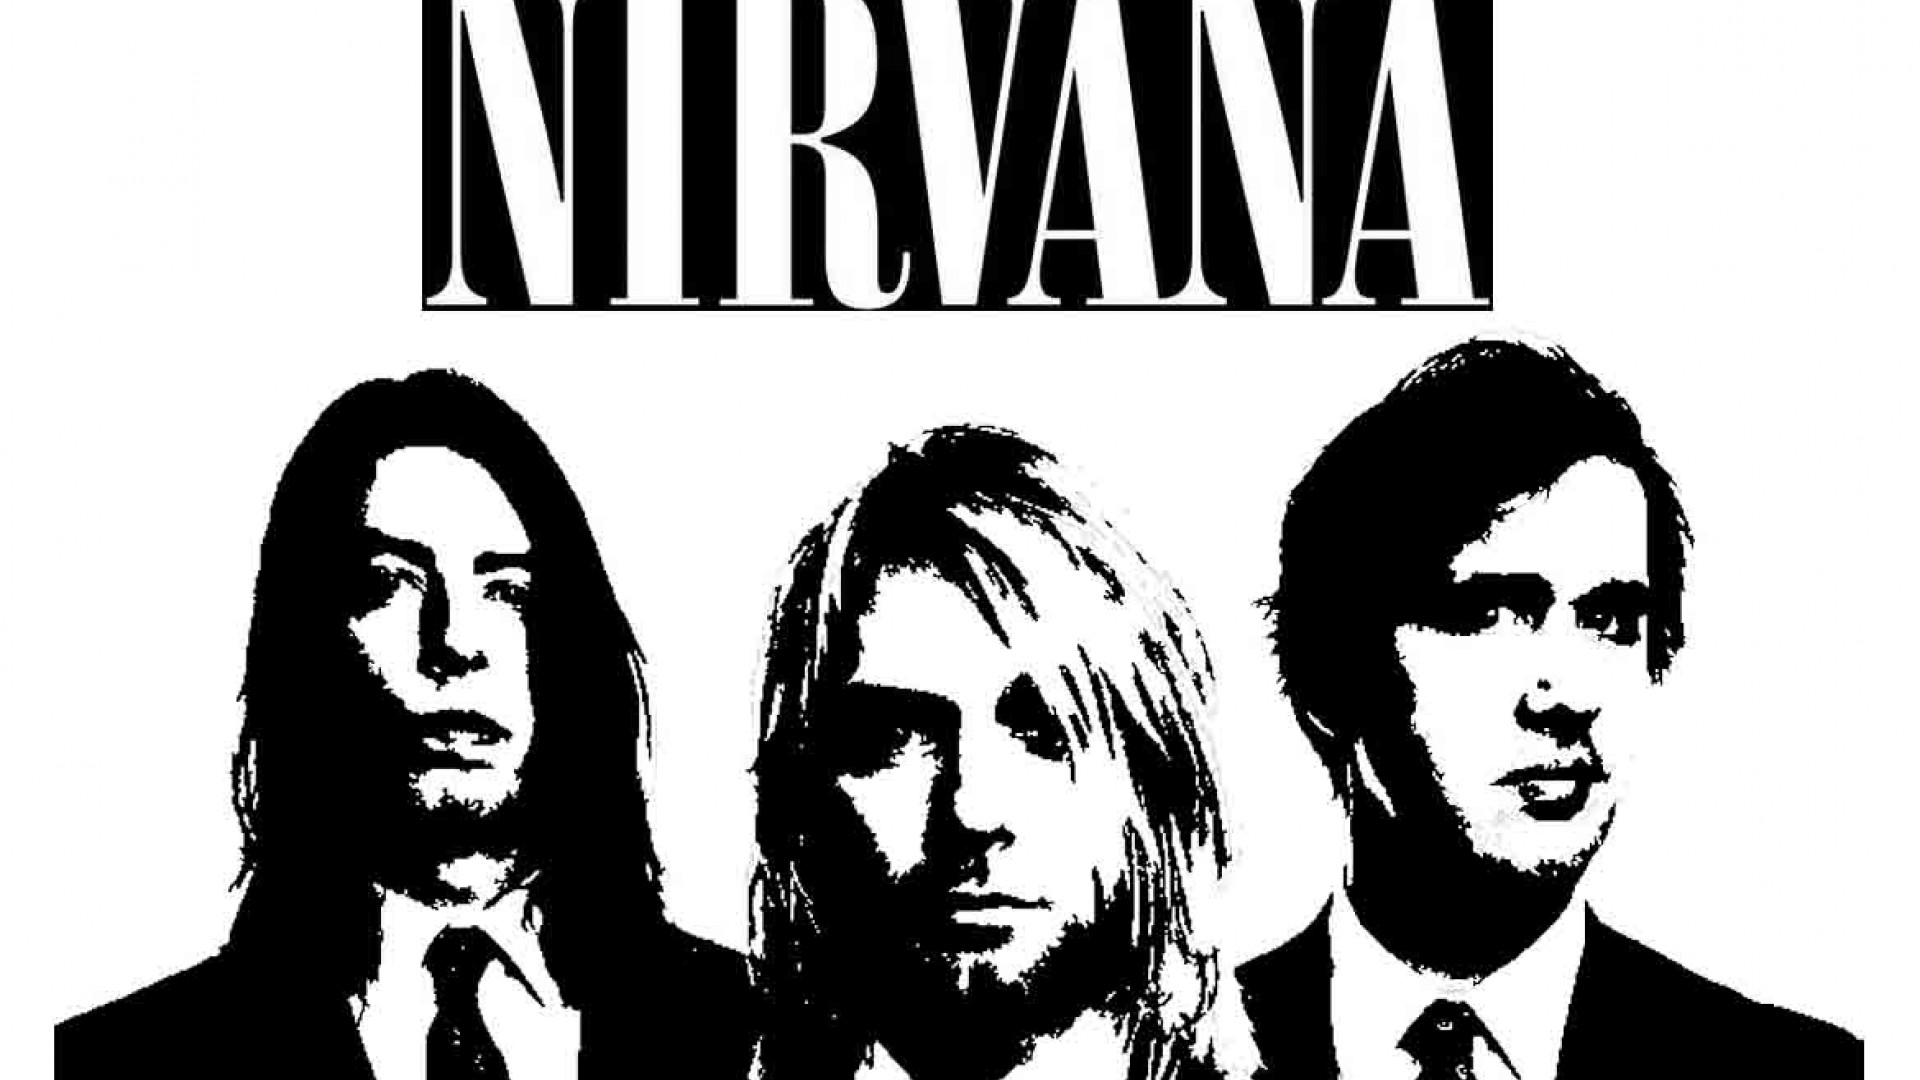 nirvana wallpapers for iphone 5